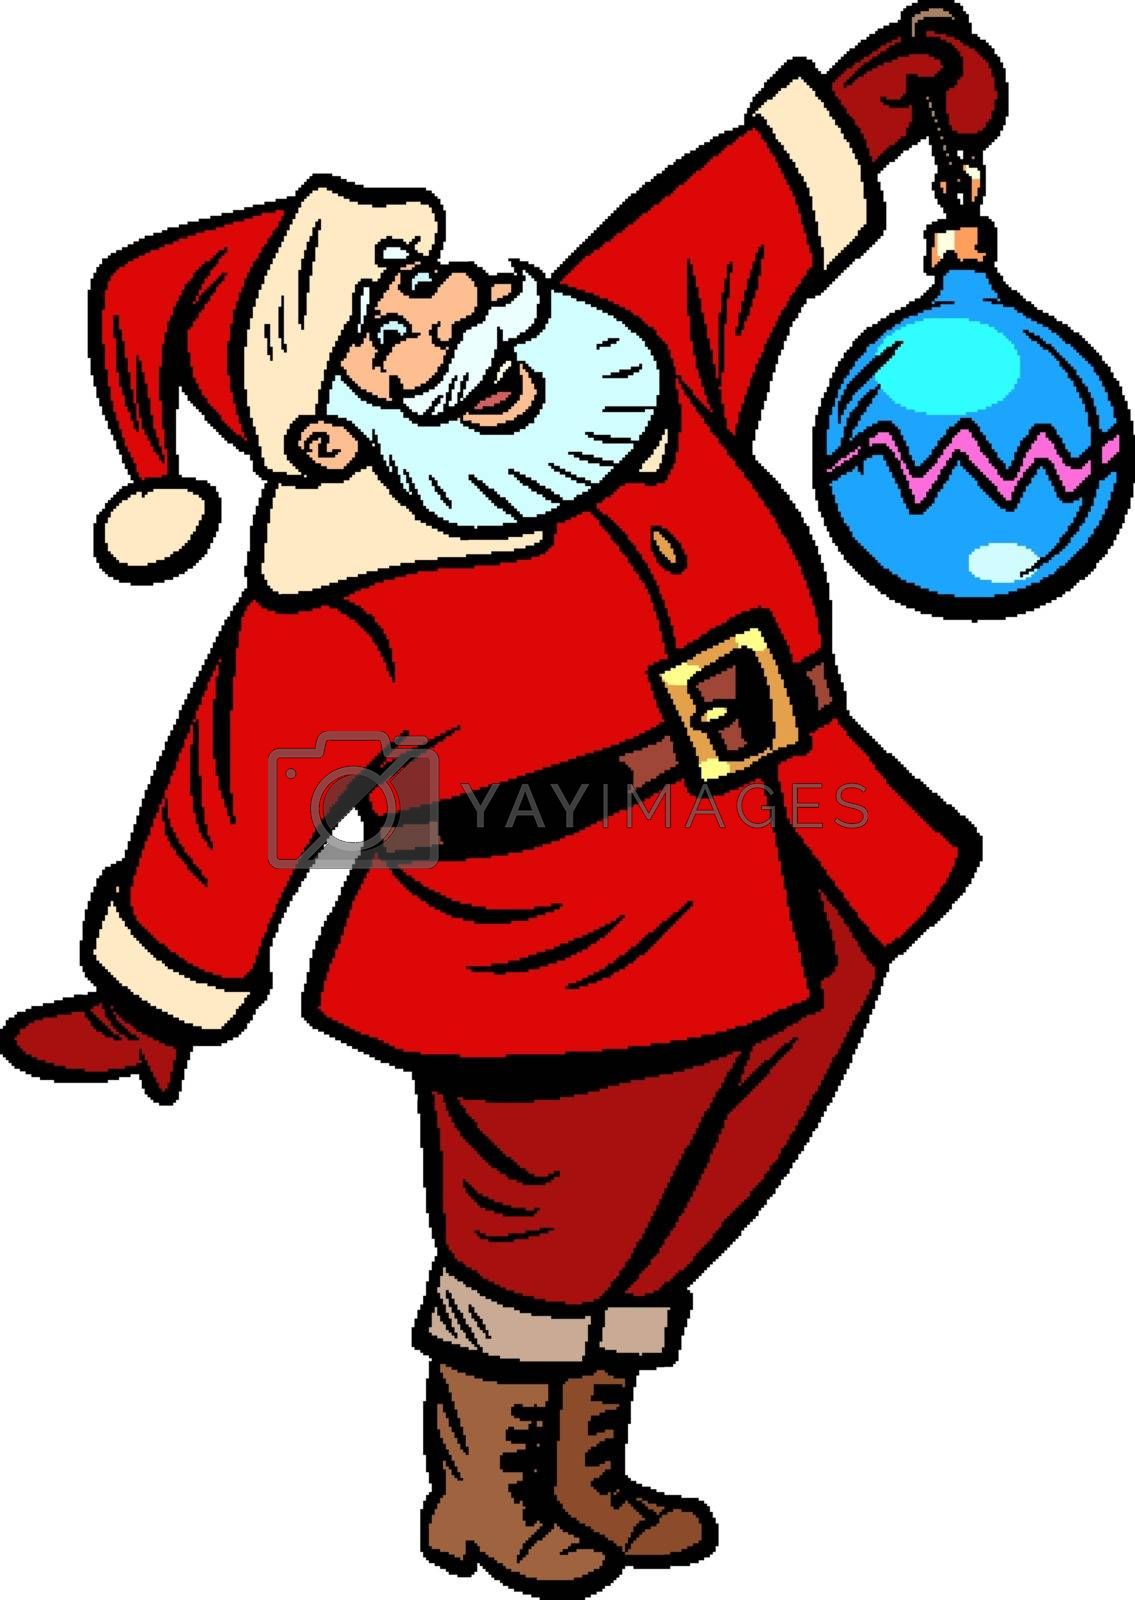 Santa Claus character Christmas new year. Comic cartoon pop art retro vector illustration drawing